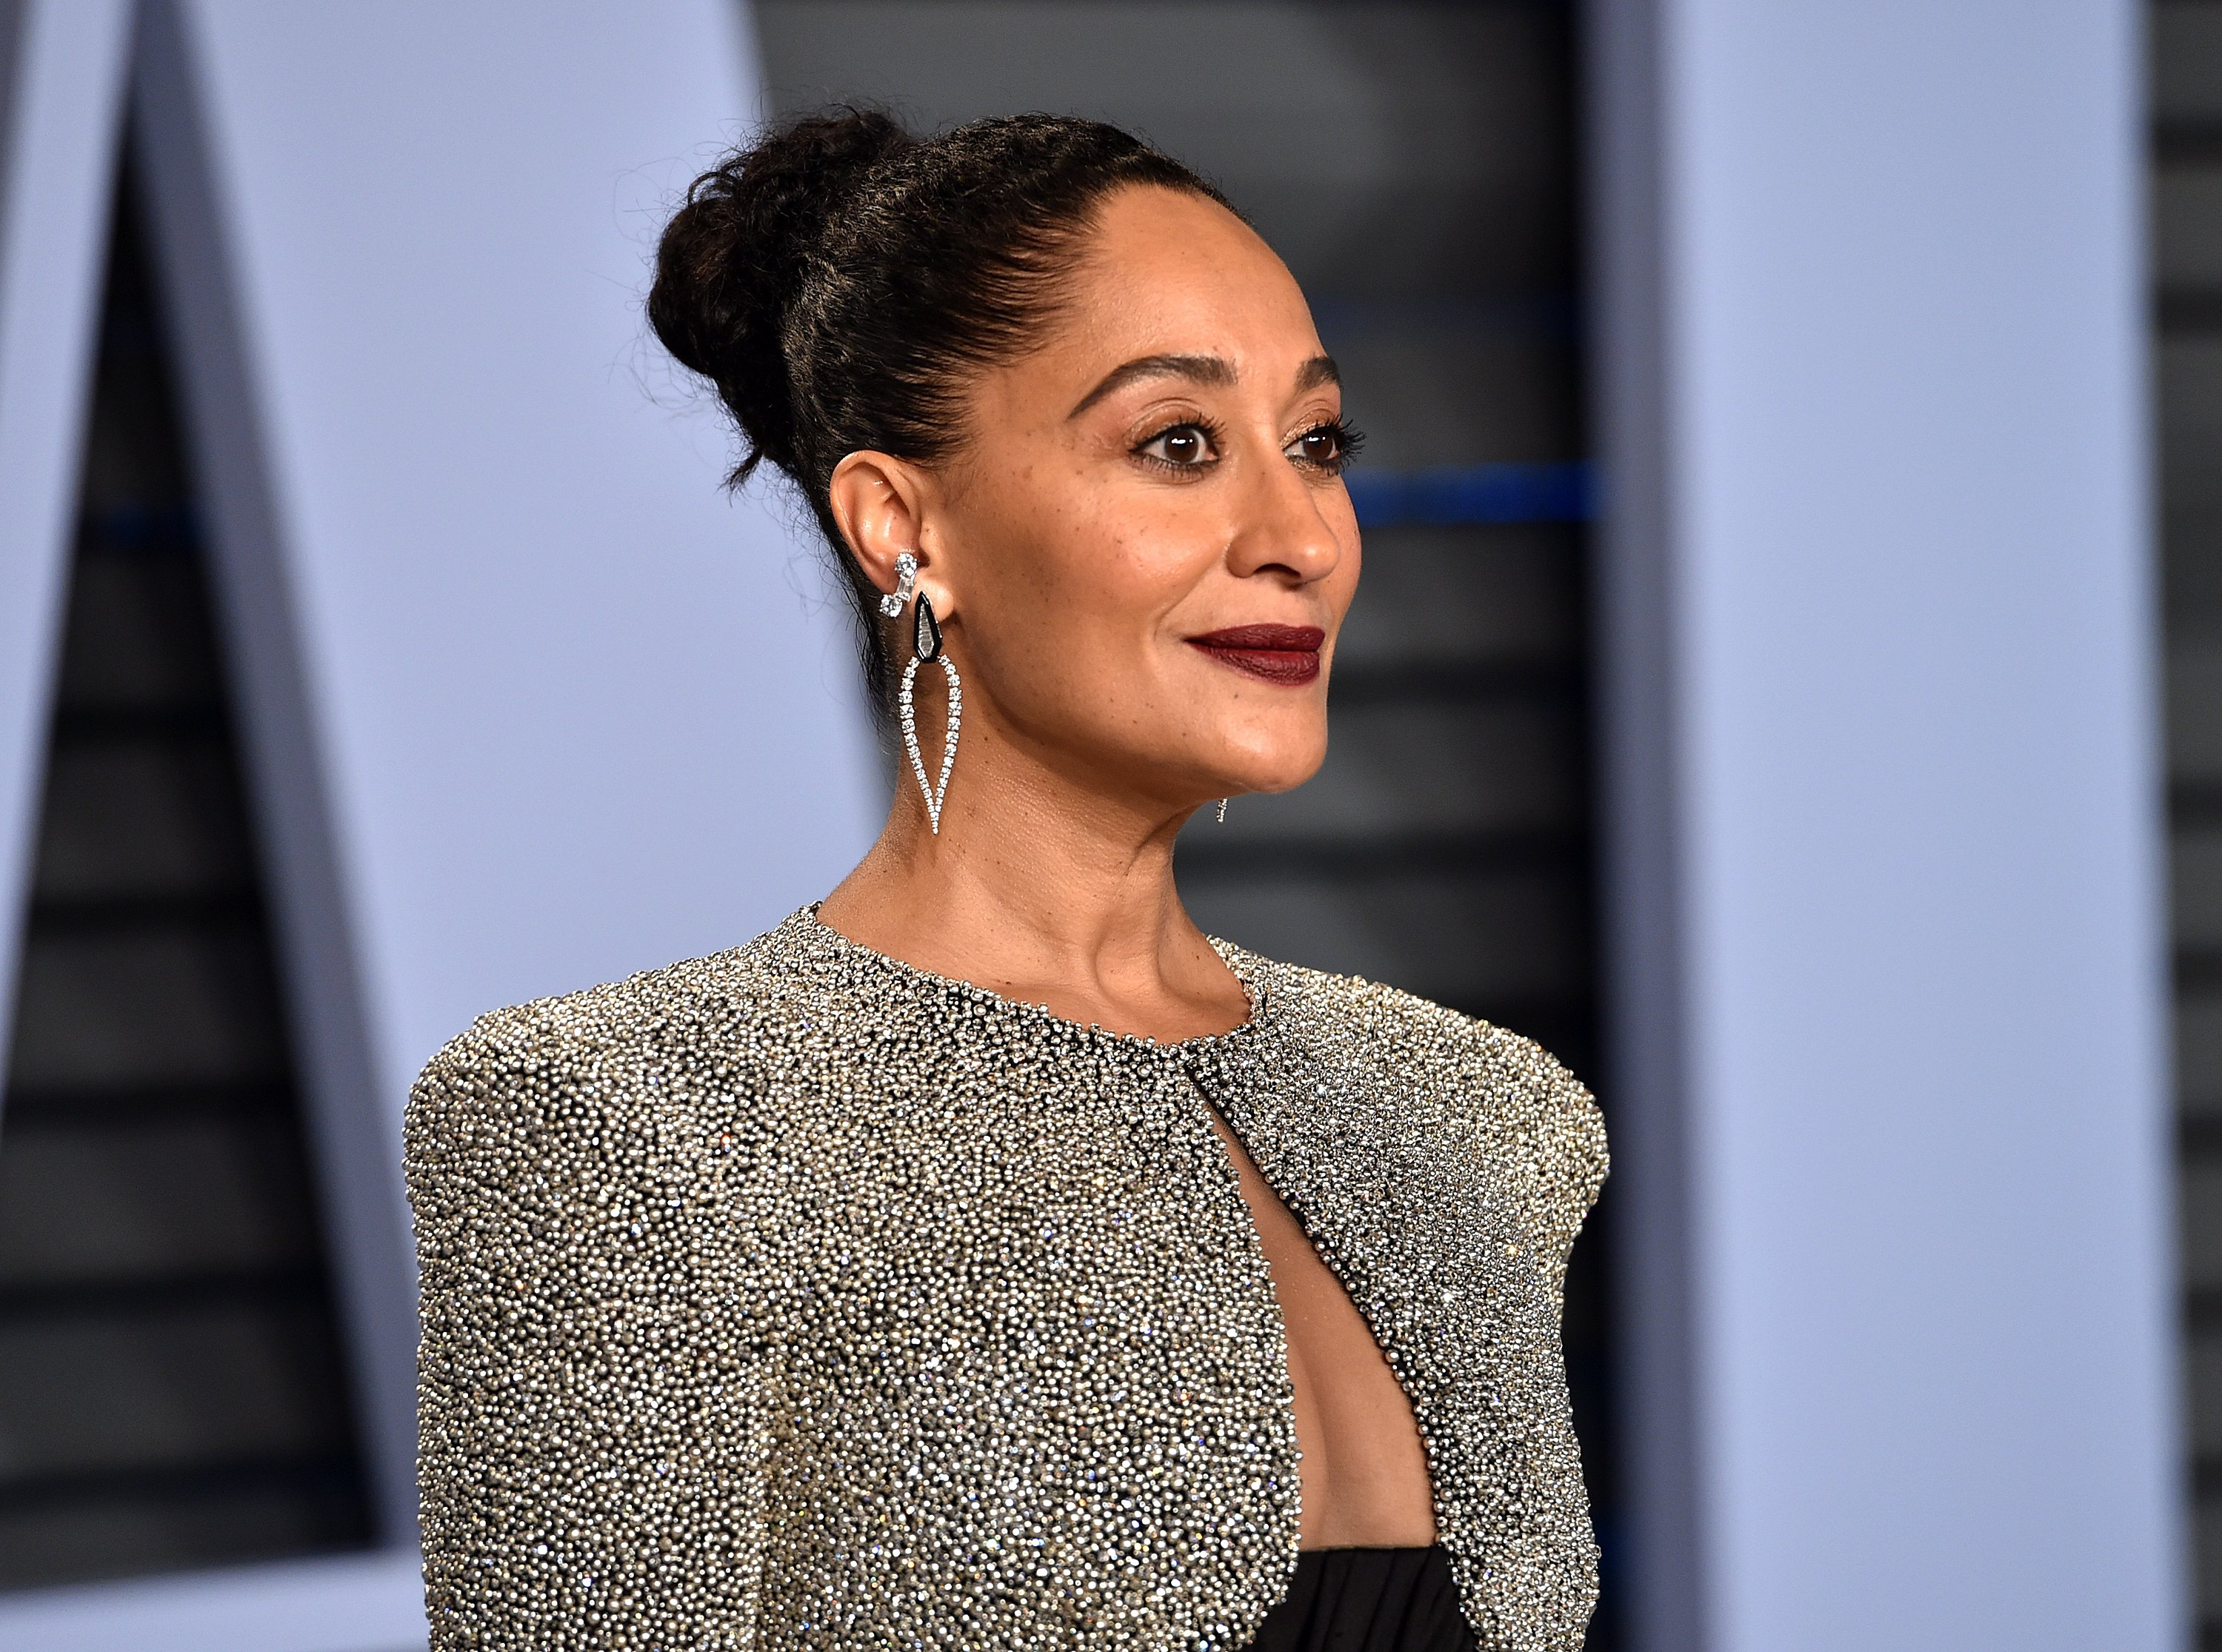 Tracee Ellis Ross at the 2018 Vanity Fair Oscars Party on March 4, 2018 in Beverly Hills, California. | Photo: Getty Images